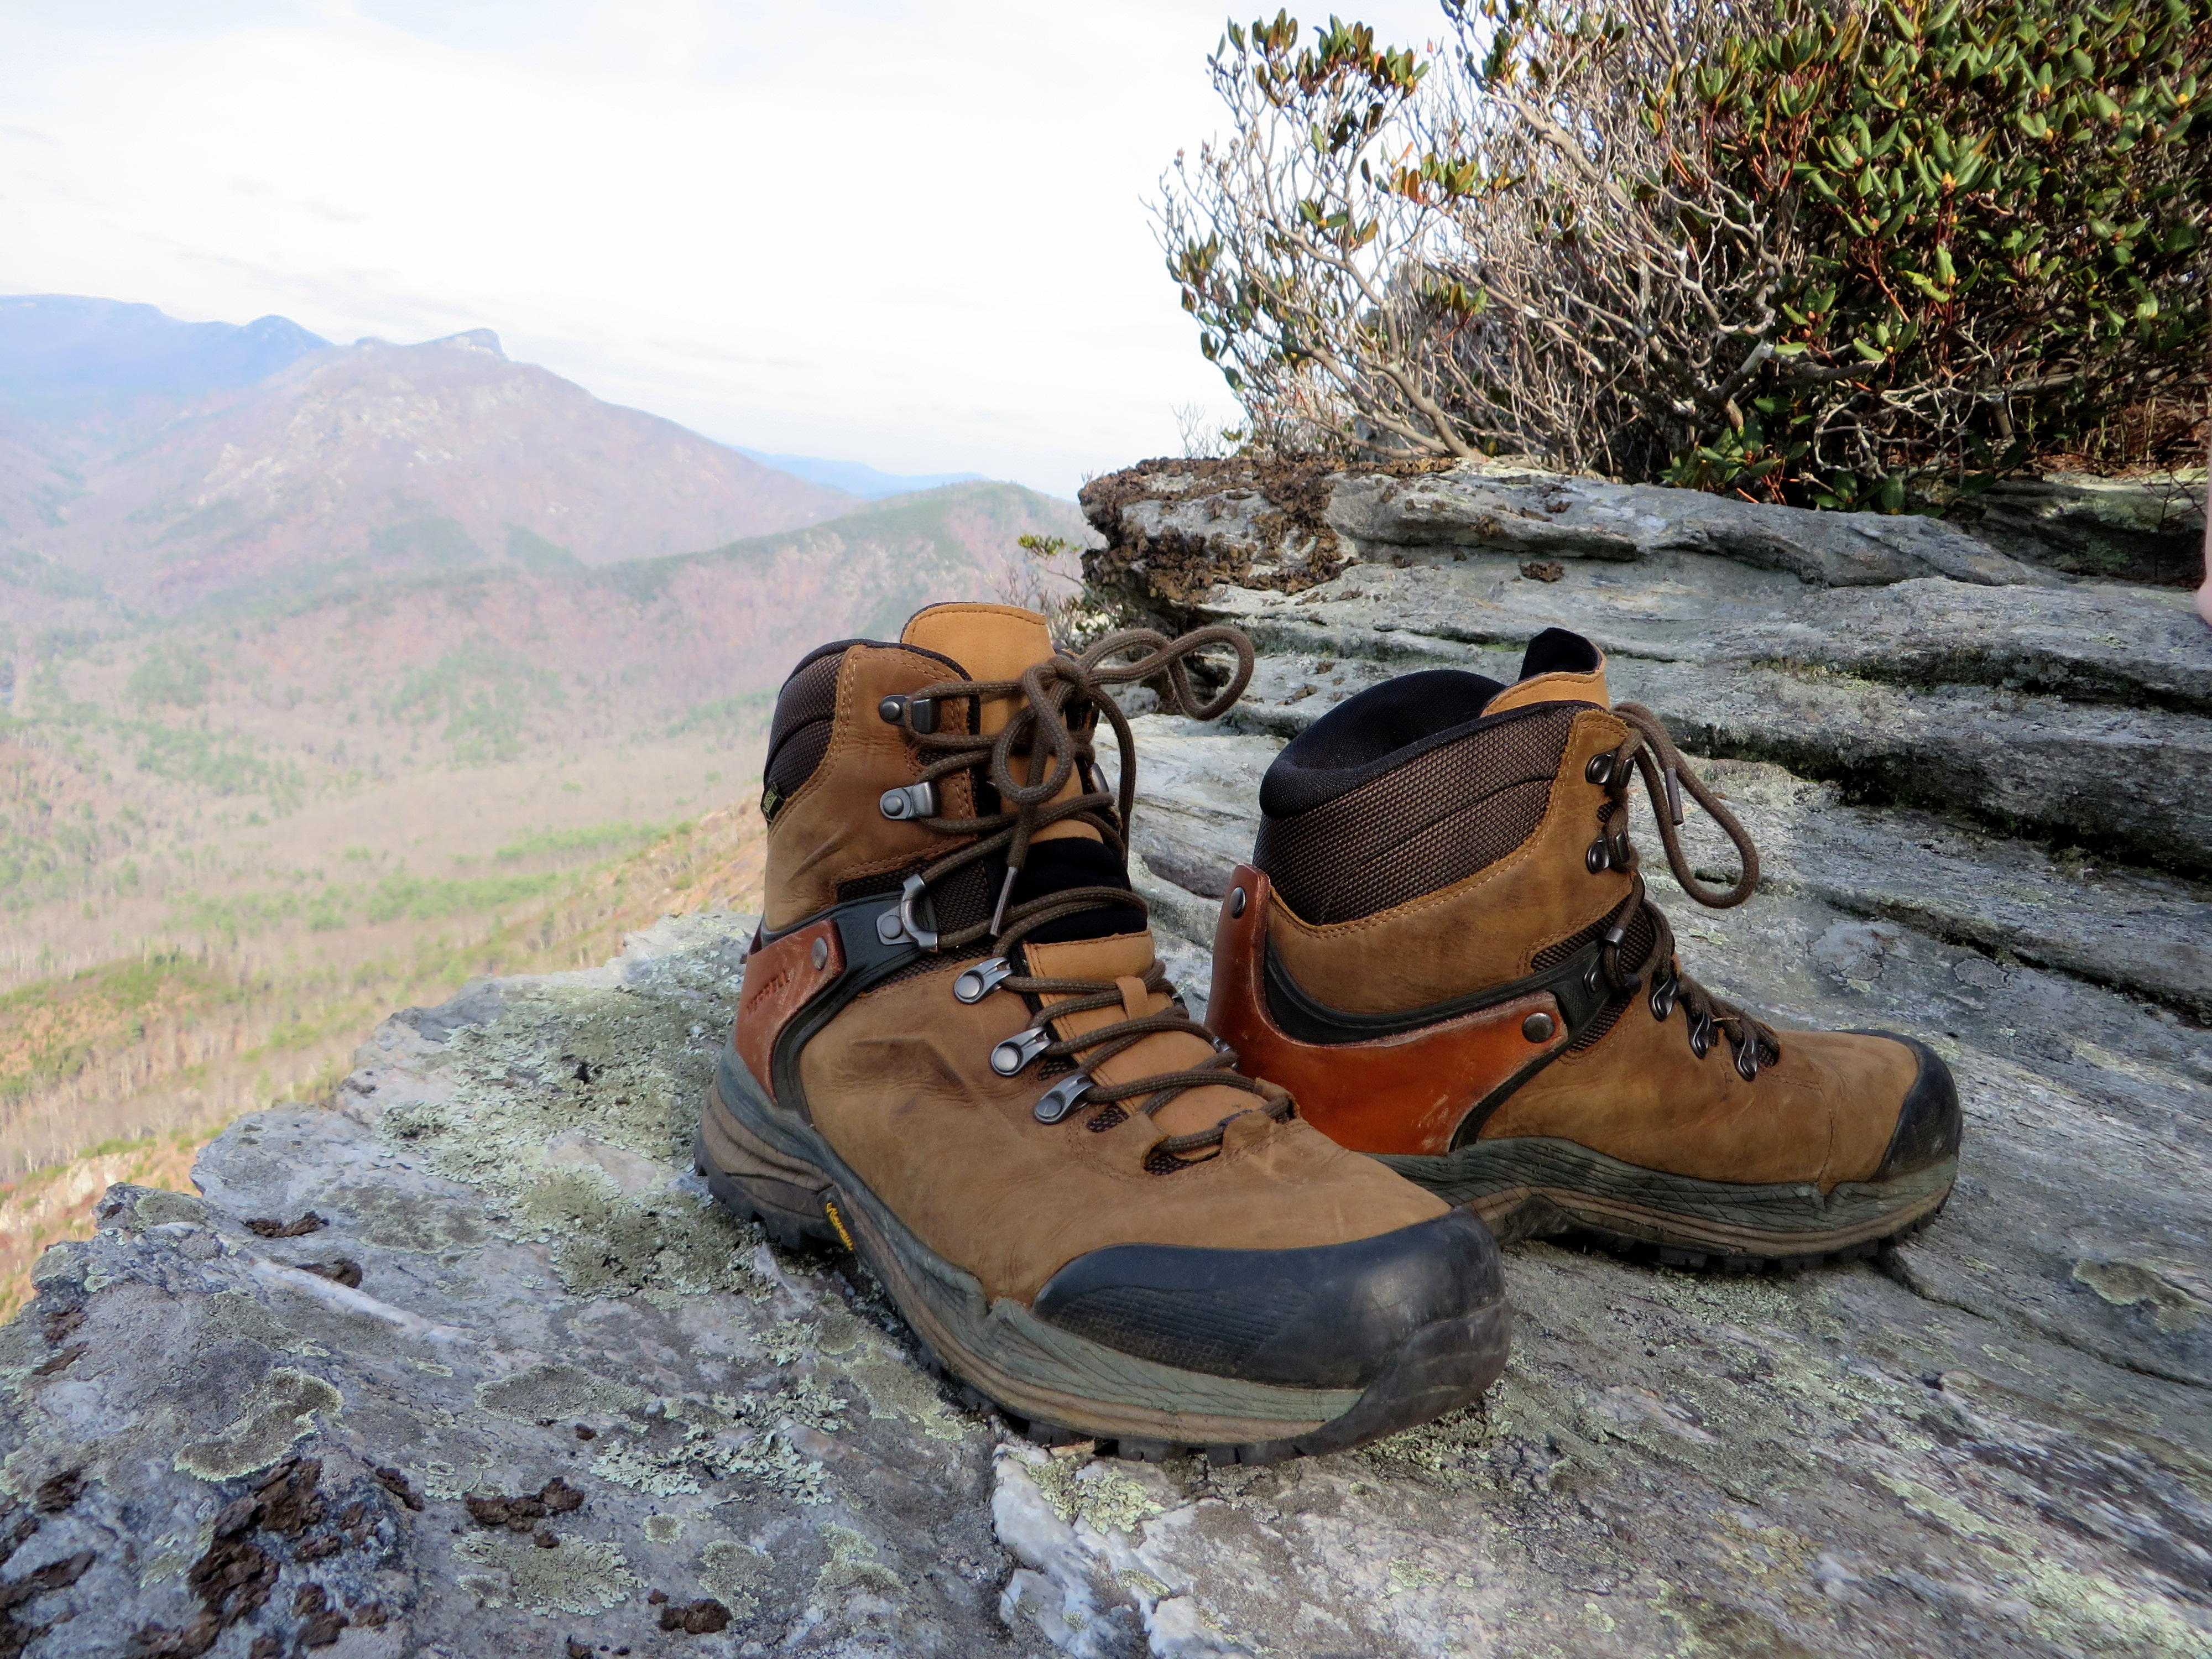 4962d89195d98f Merrell Phaserbound Mens Waterproof Backpacking Boots Camping & Hiking  Clothing